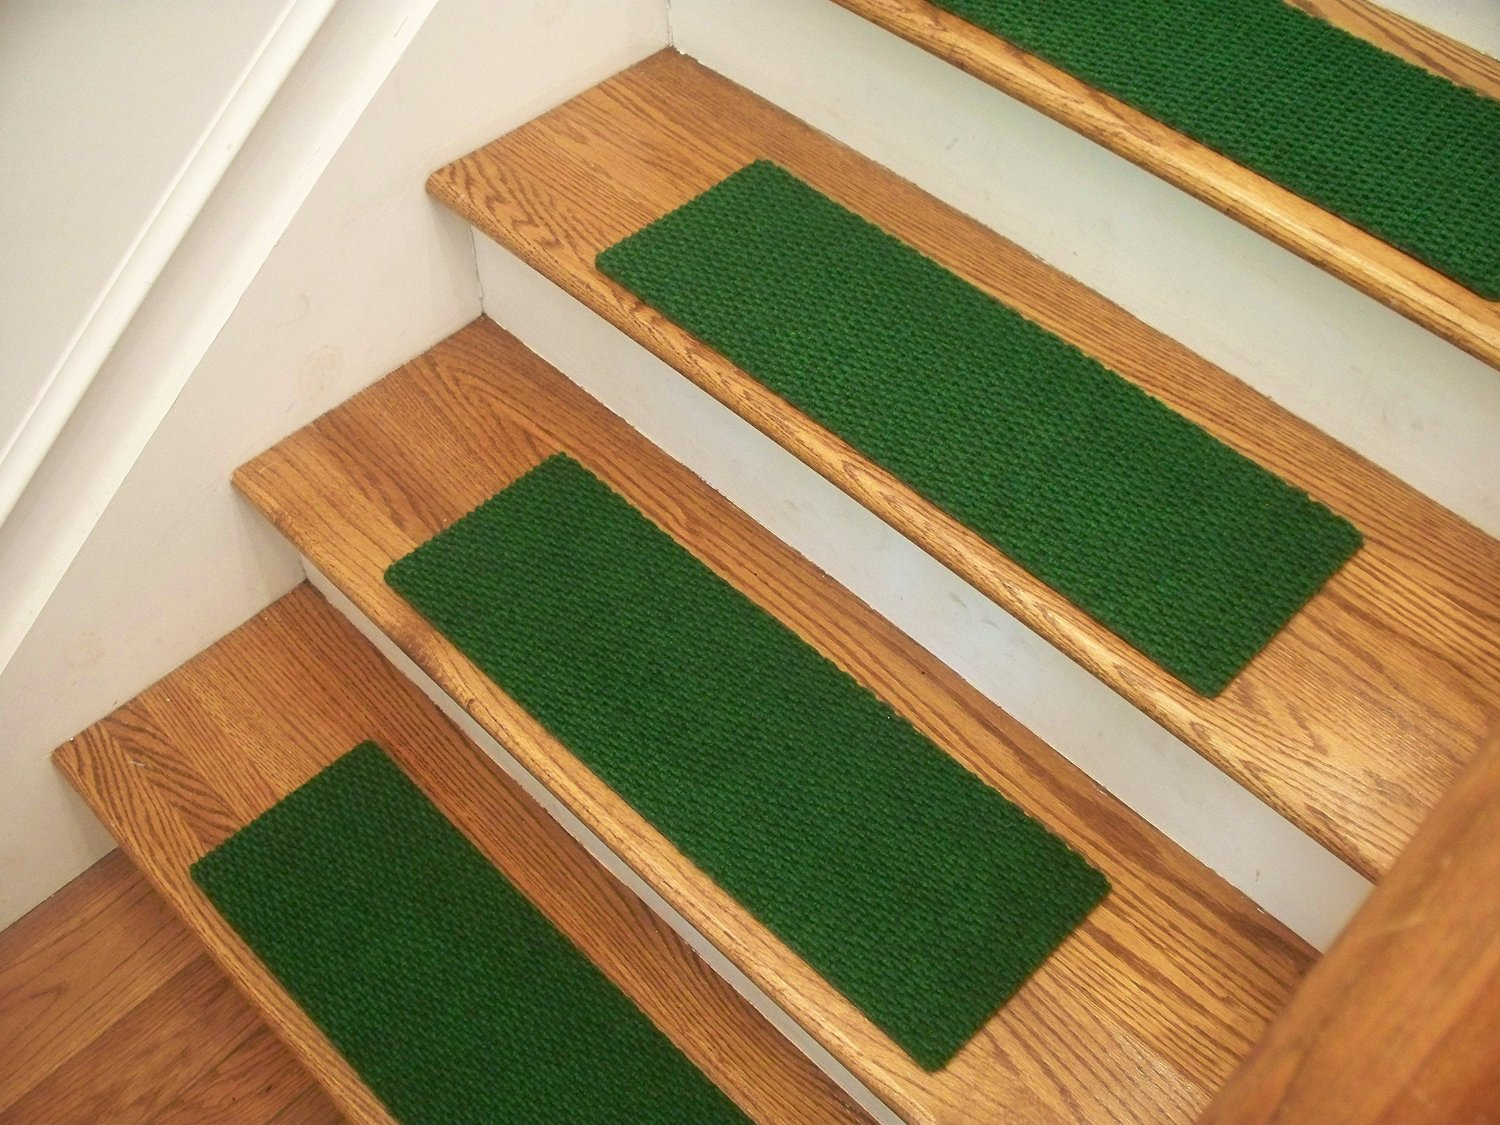 """Essential Carpet Stair Treads - Style: Berber - Color: Golf Green - Size: 24"""" x 8"""" - Set of 4"""